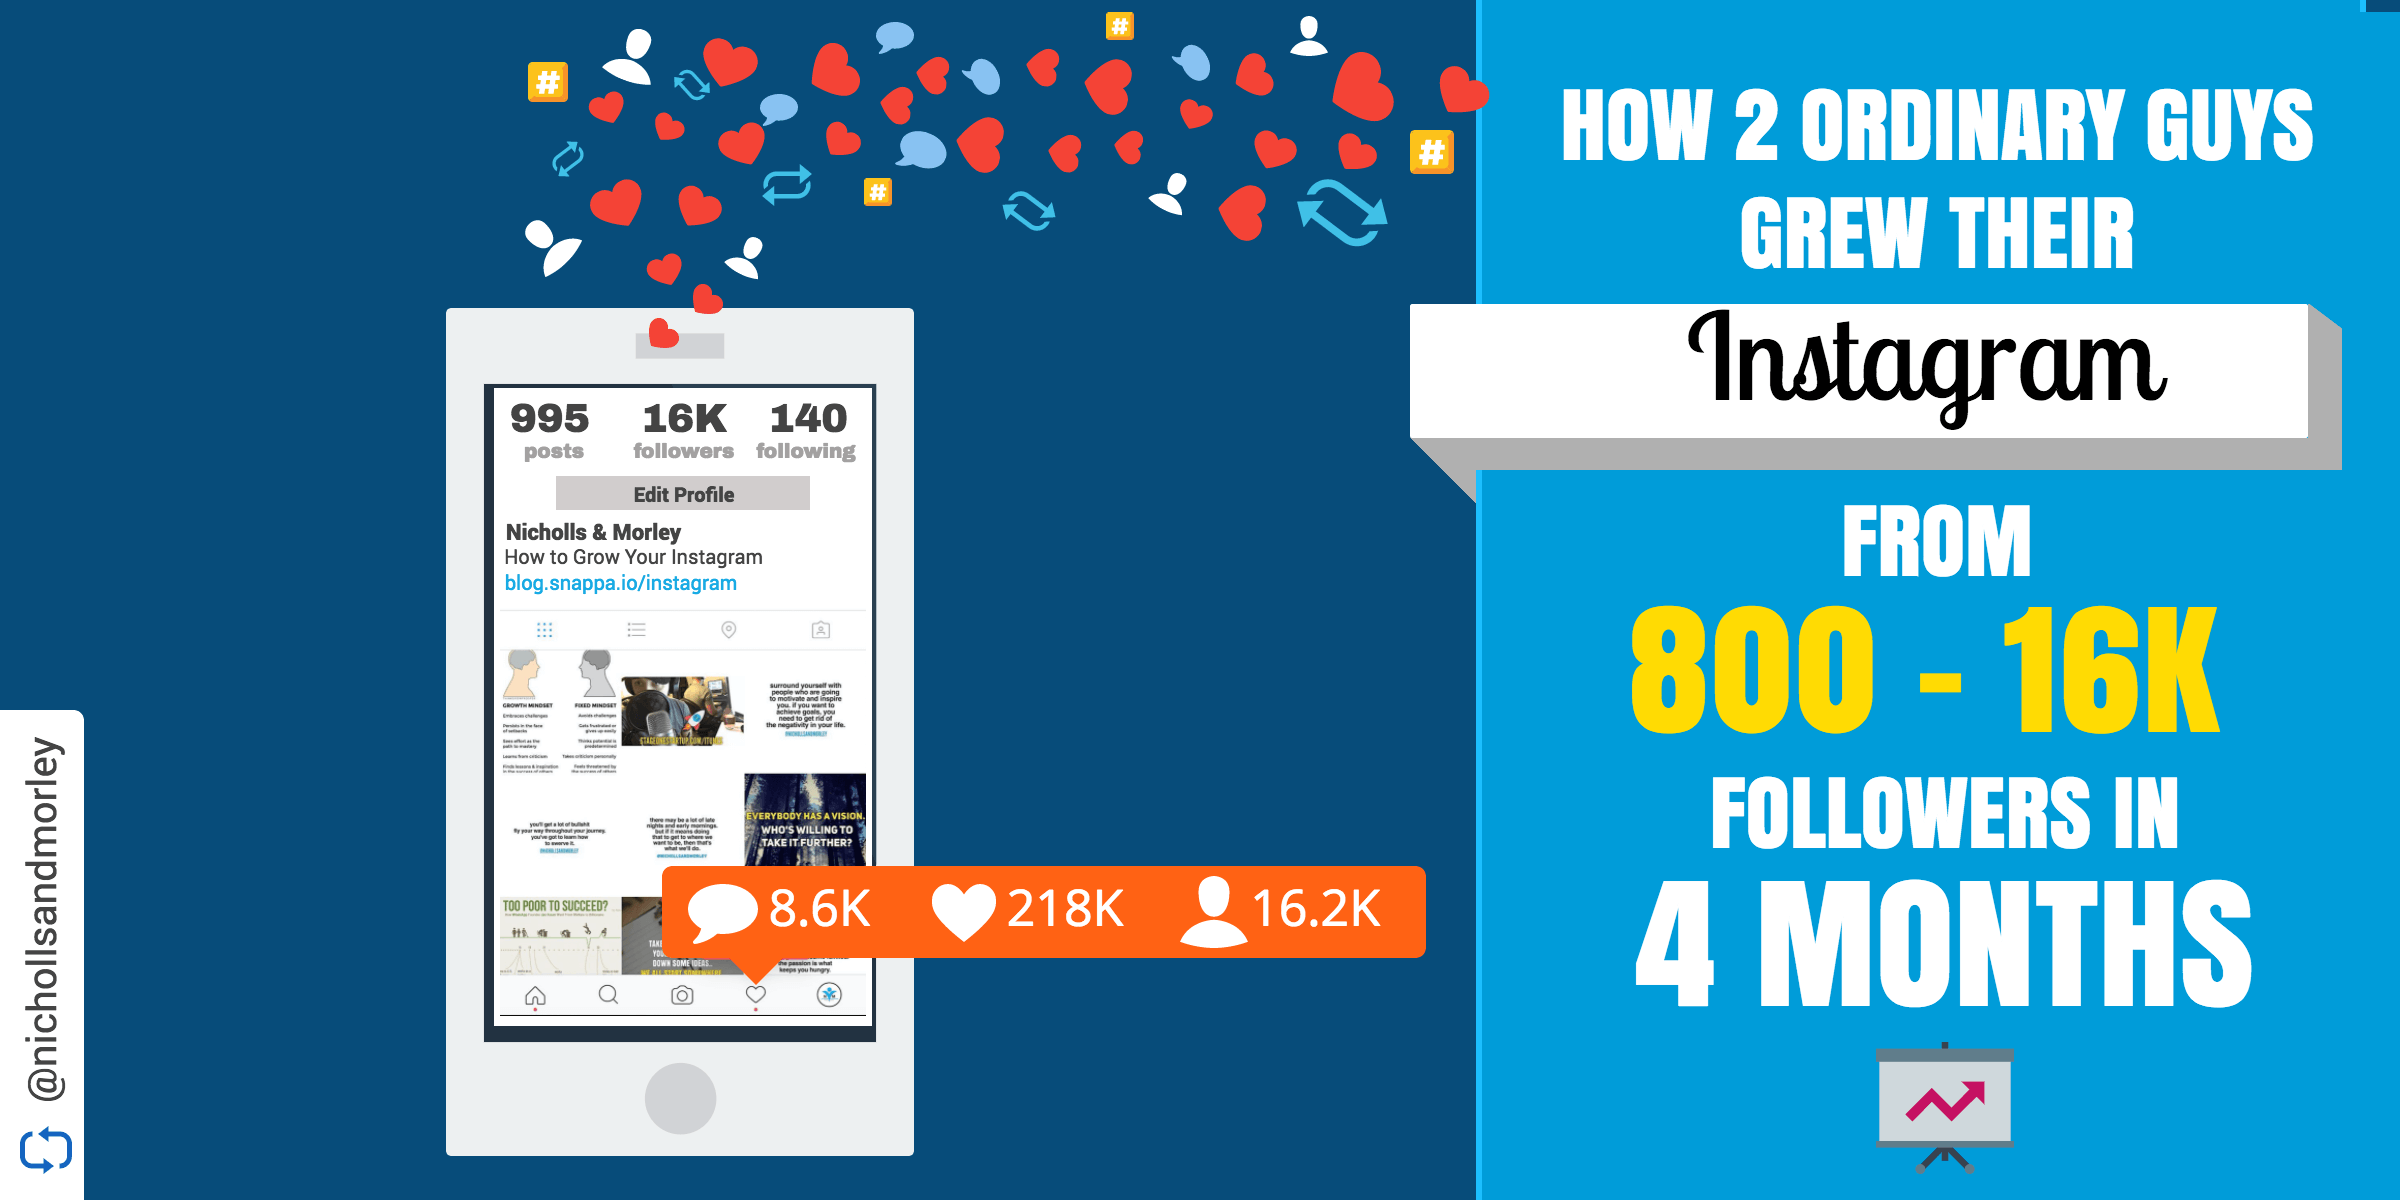 How 2 Ordinary Guys Grew Their Instagram Following From 800 - 16K in